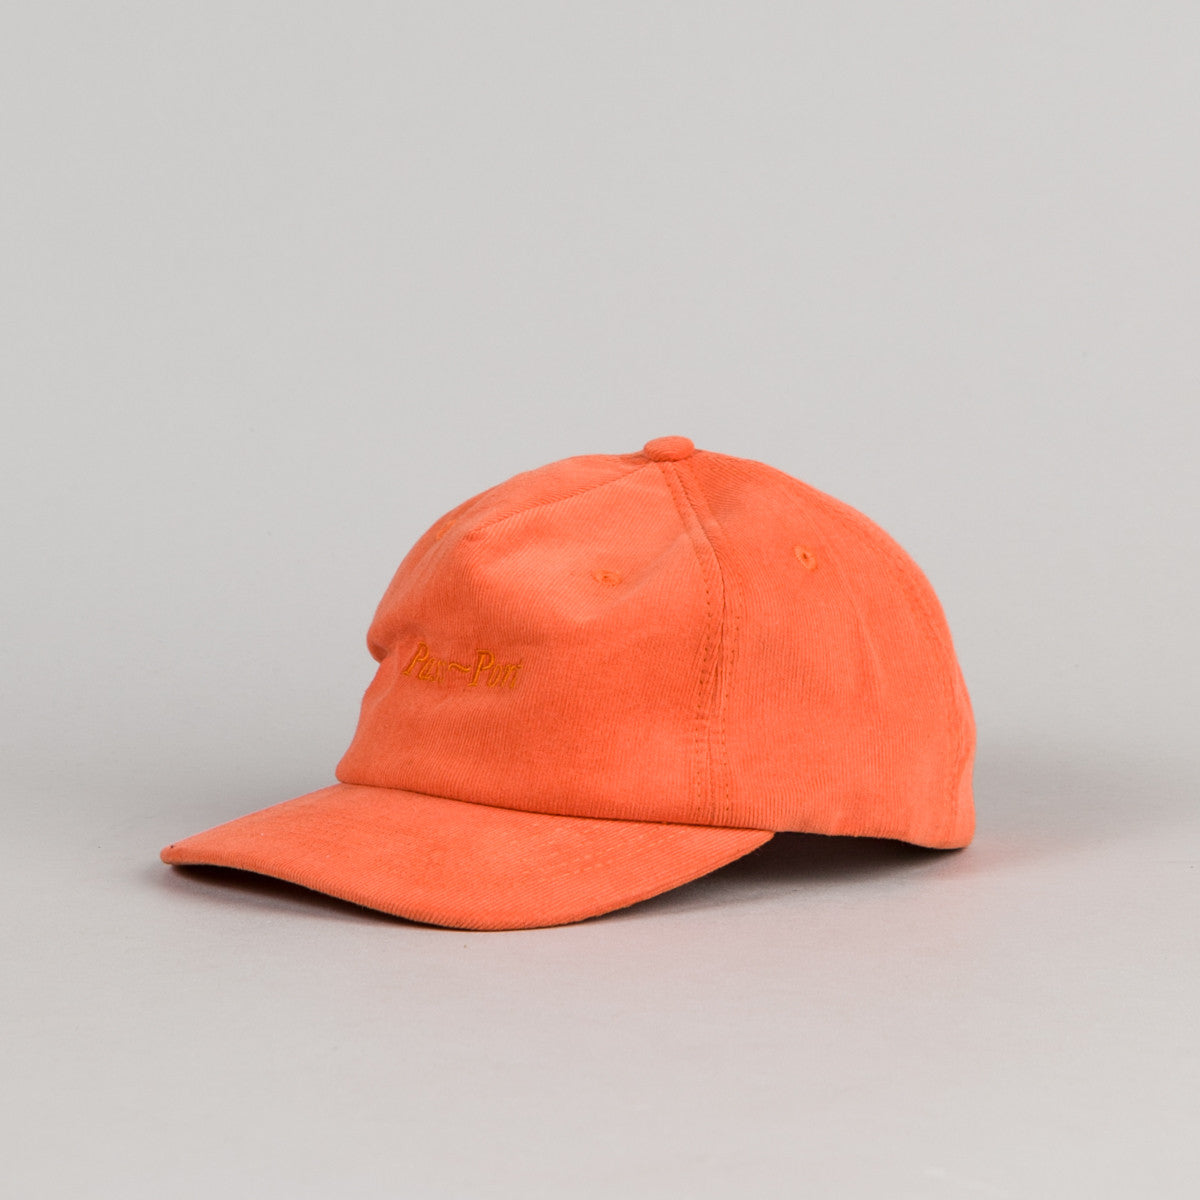 Pass Port Safe P~P Cap - Orange